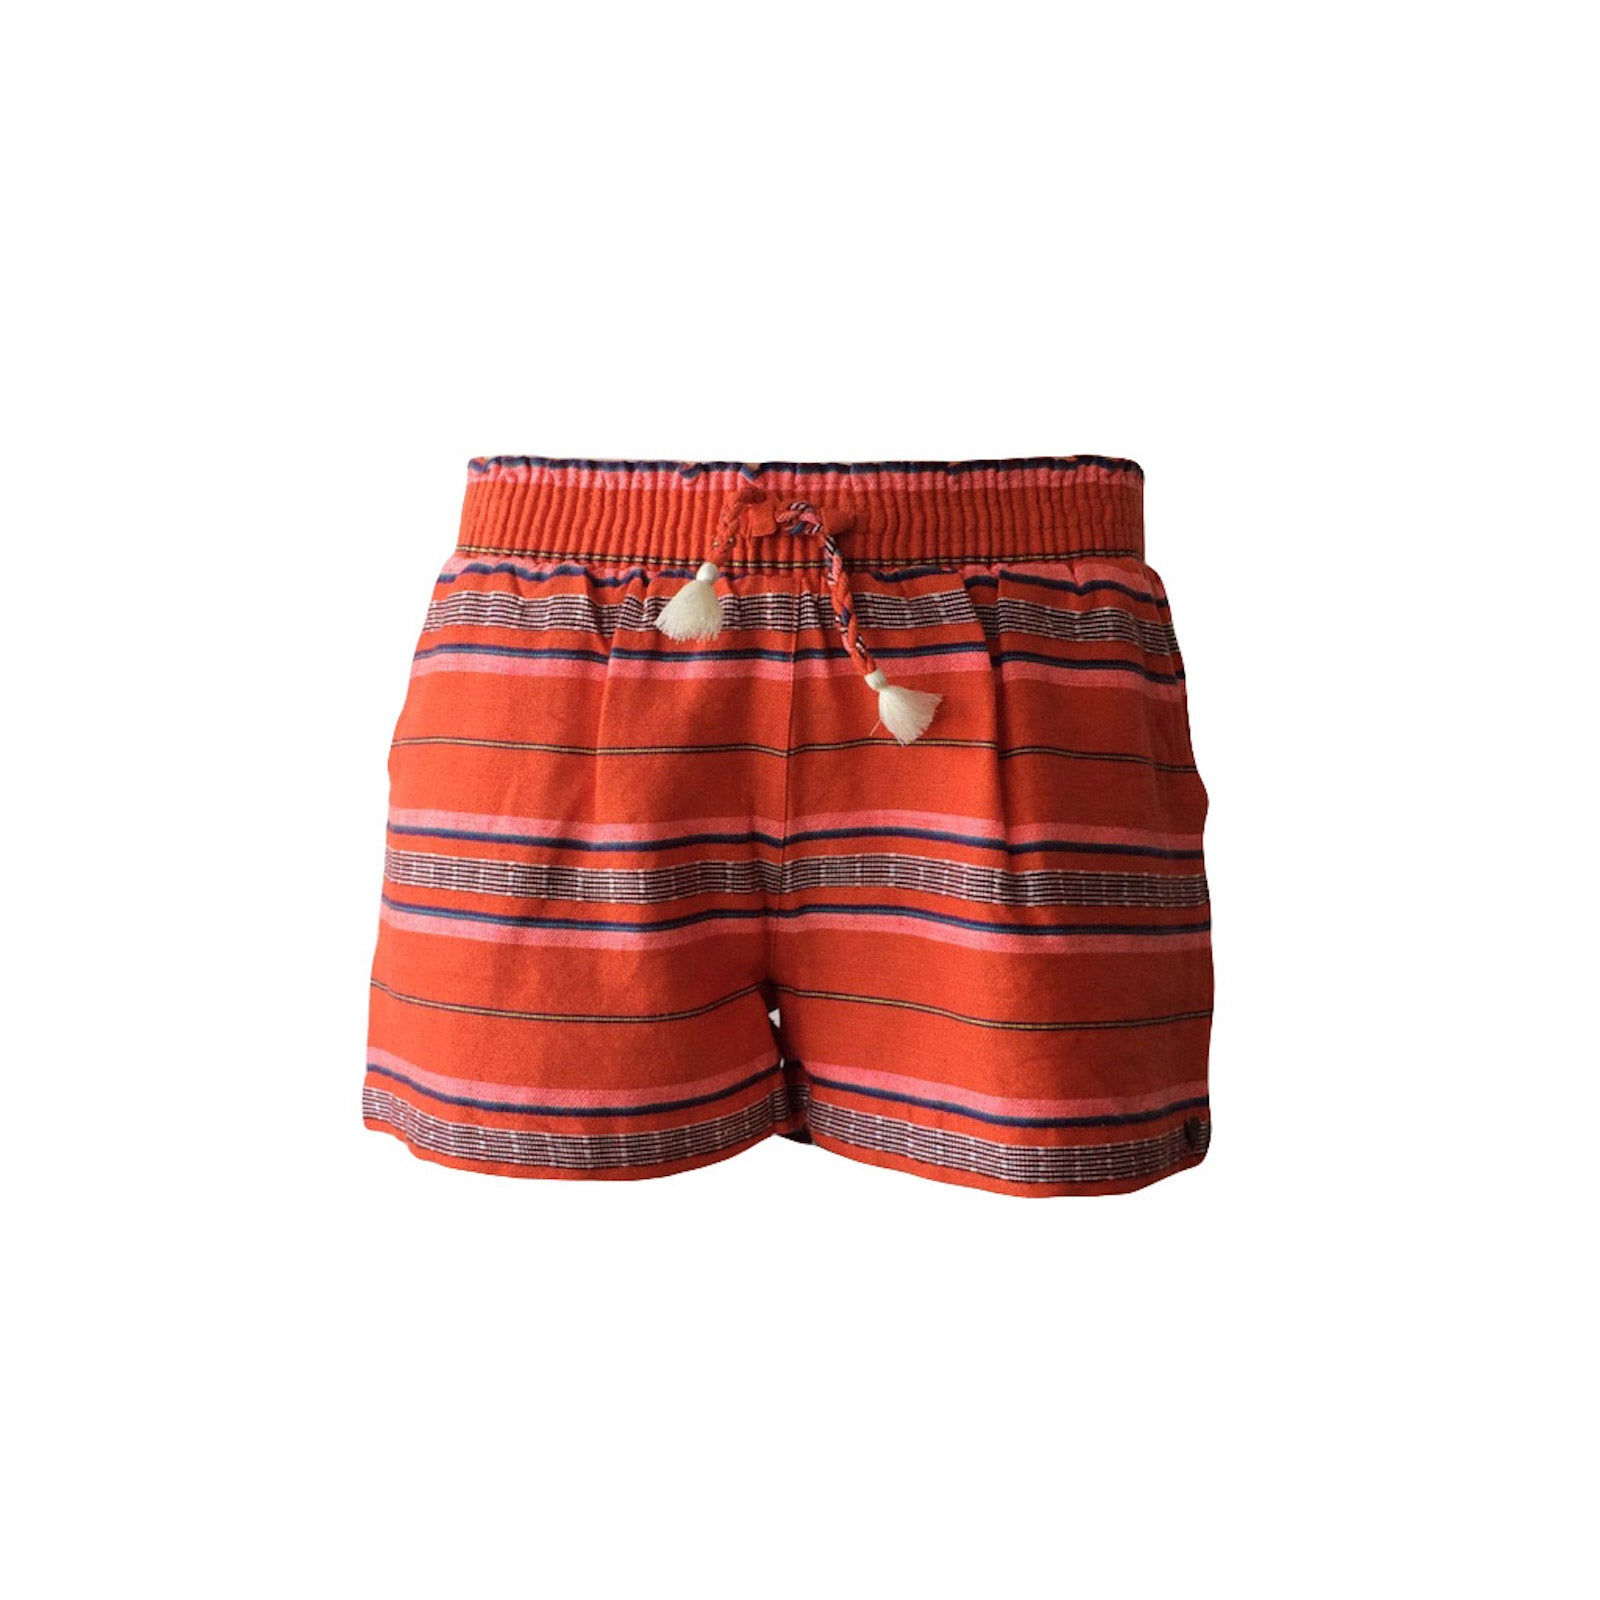 Loose fit, vibrant red striped beach shorts by Scotch R